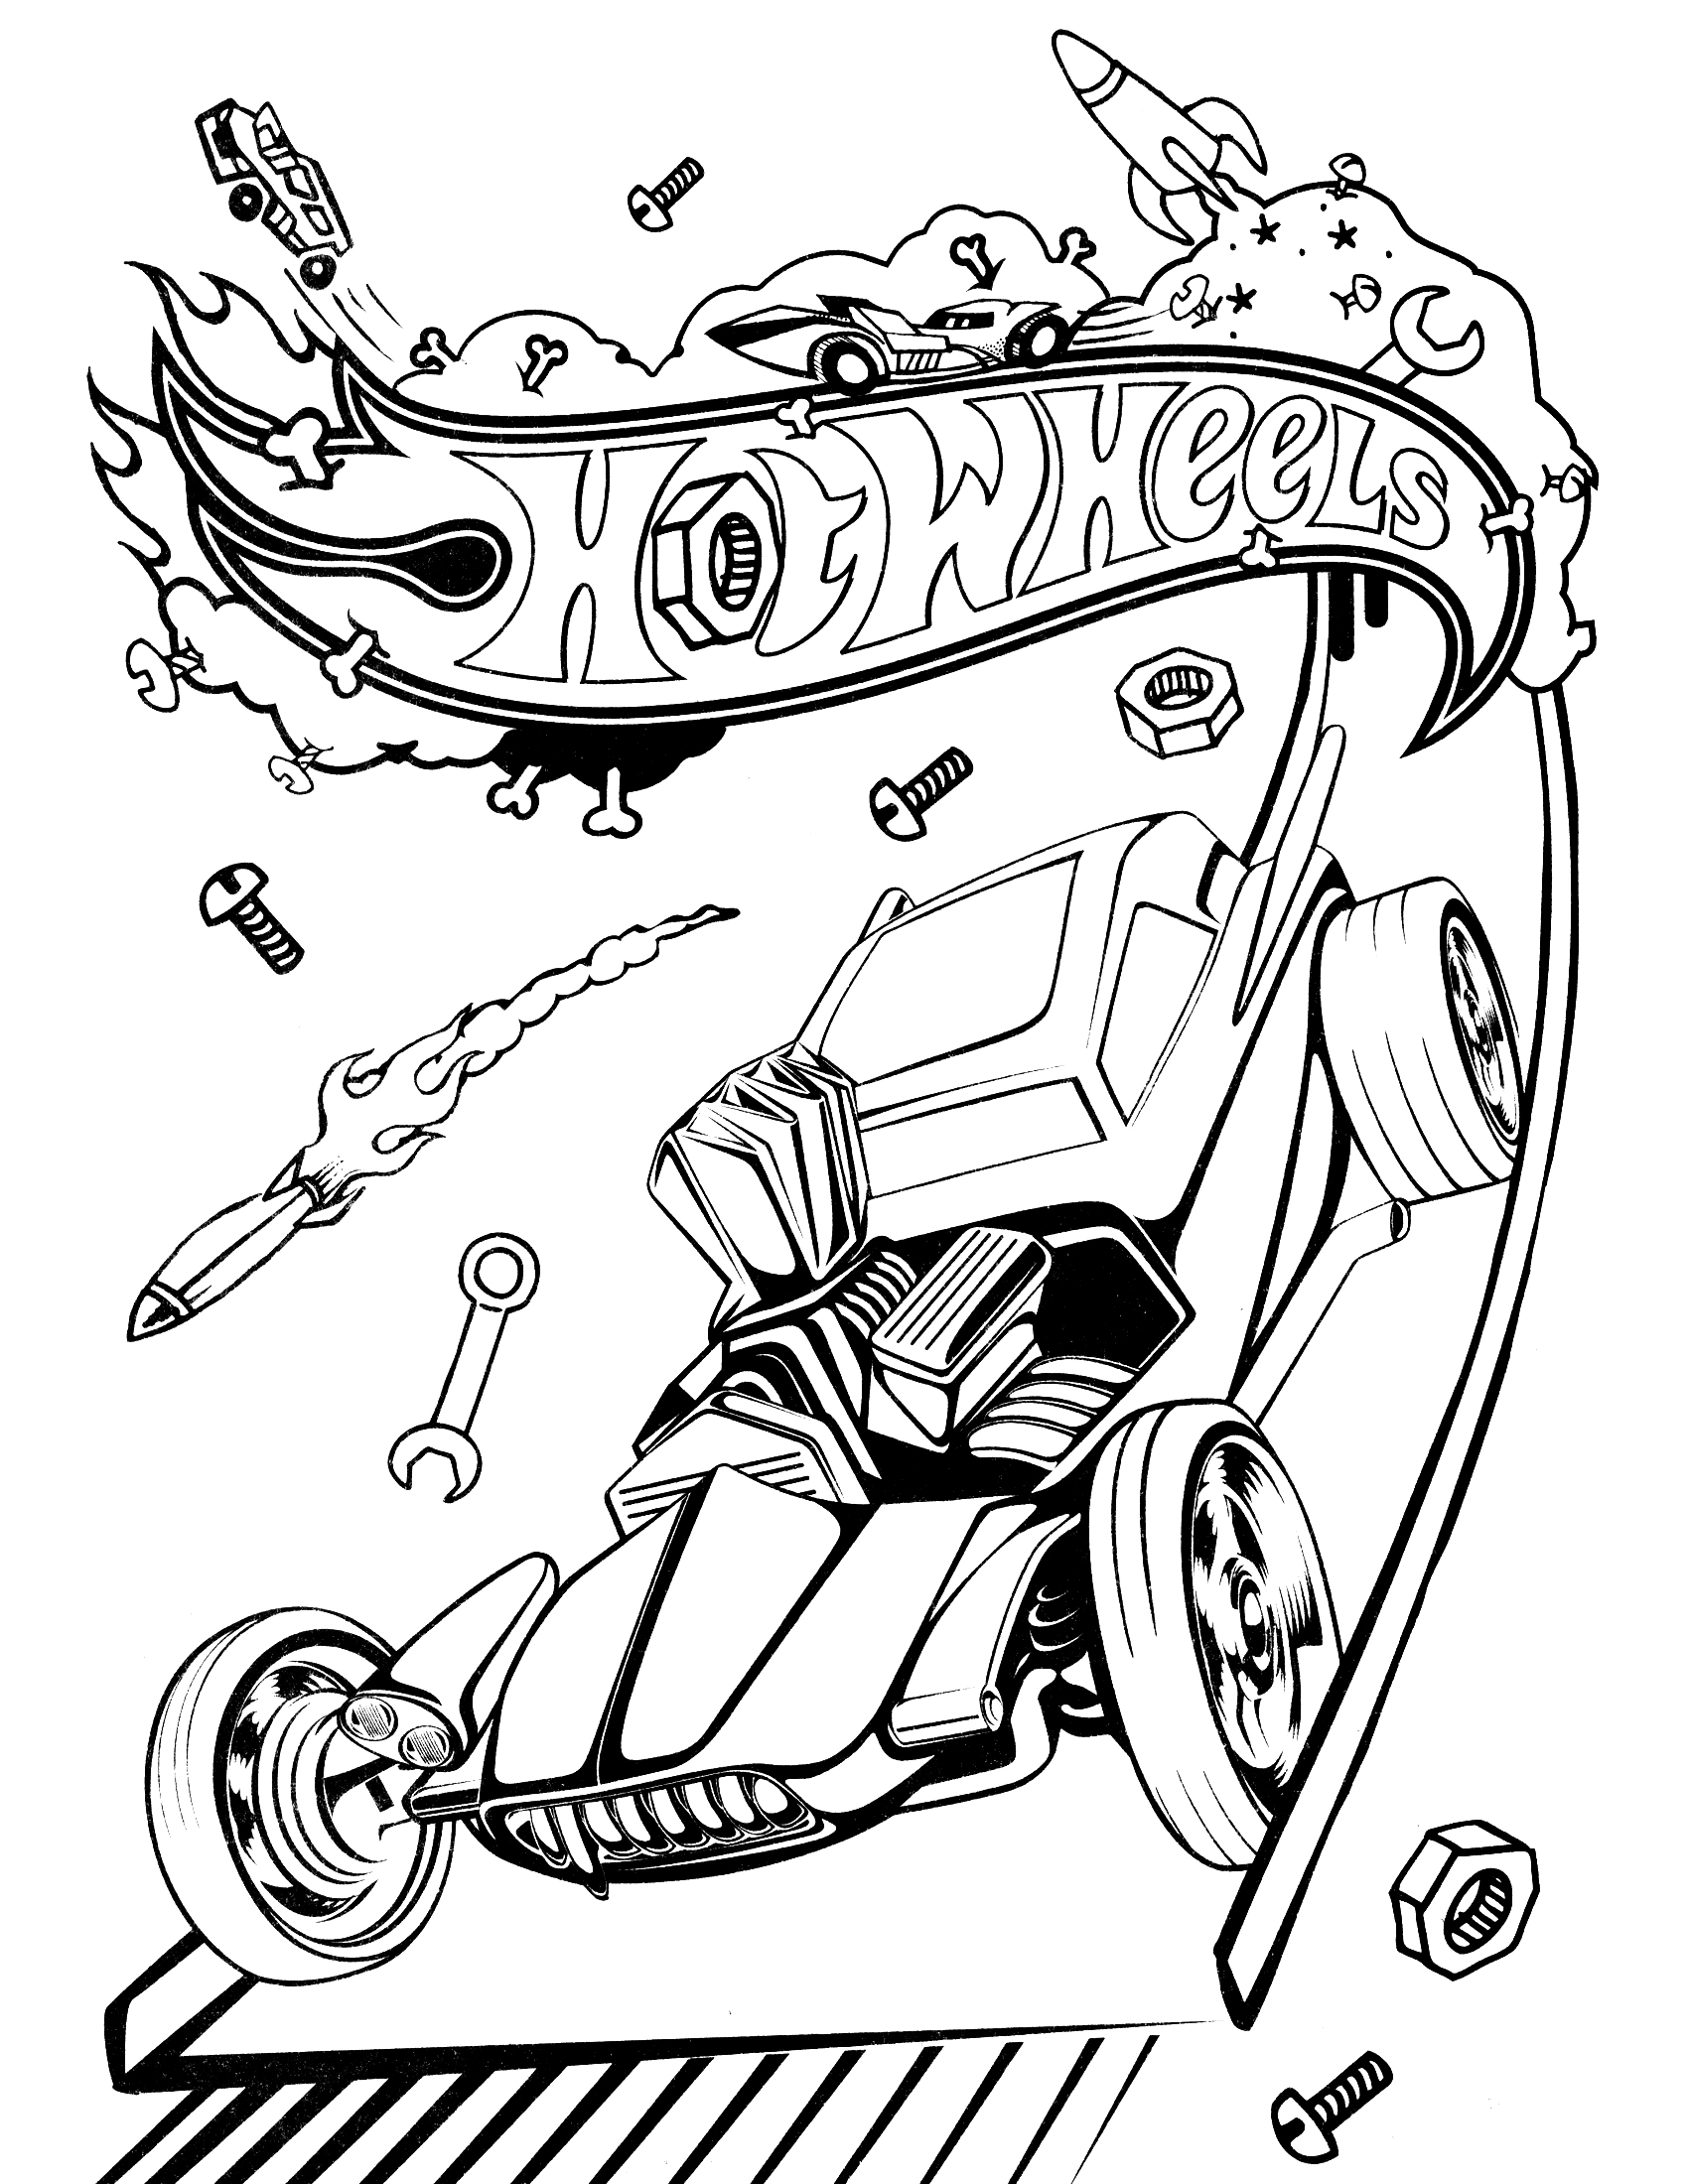 hotwheels colouring pages free printable hot wheels coloring pages for kids hotwheels pages colouring 1 1